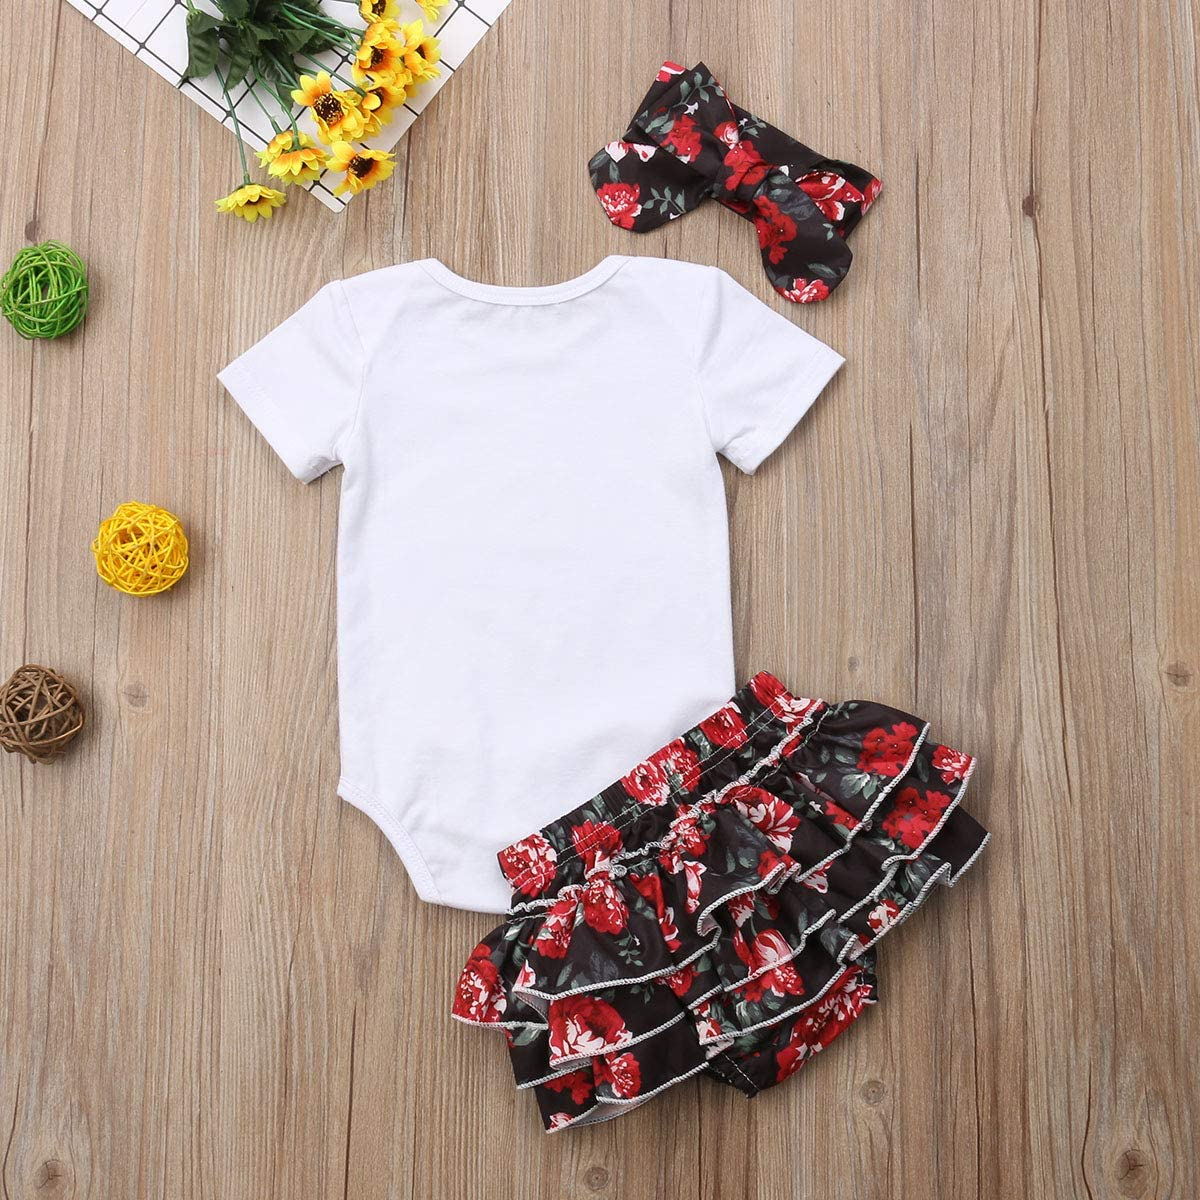 Infant Baby Girl Floral Clothes Short Sleeve Letters Bodysuit Romper Tops Ruffle Bowknot Shorts Bloomers 3Pcs Summer Outfits